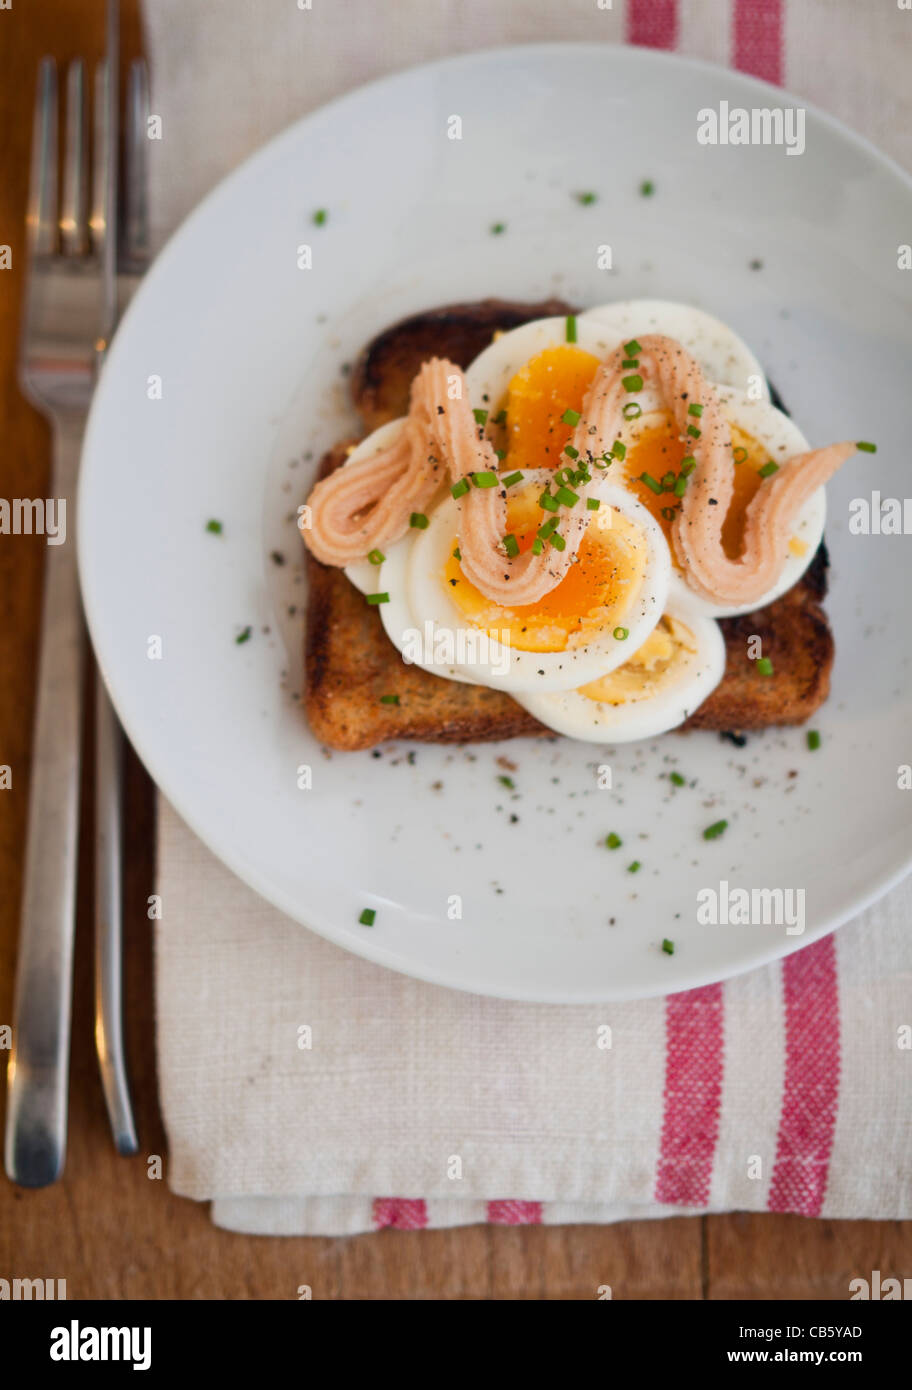 Classic Swedish open faced sandwich of sliced boiled egg topped with Kalle's kaviar and sprinkled with chopped - Stock Image